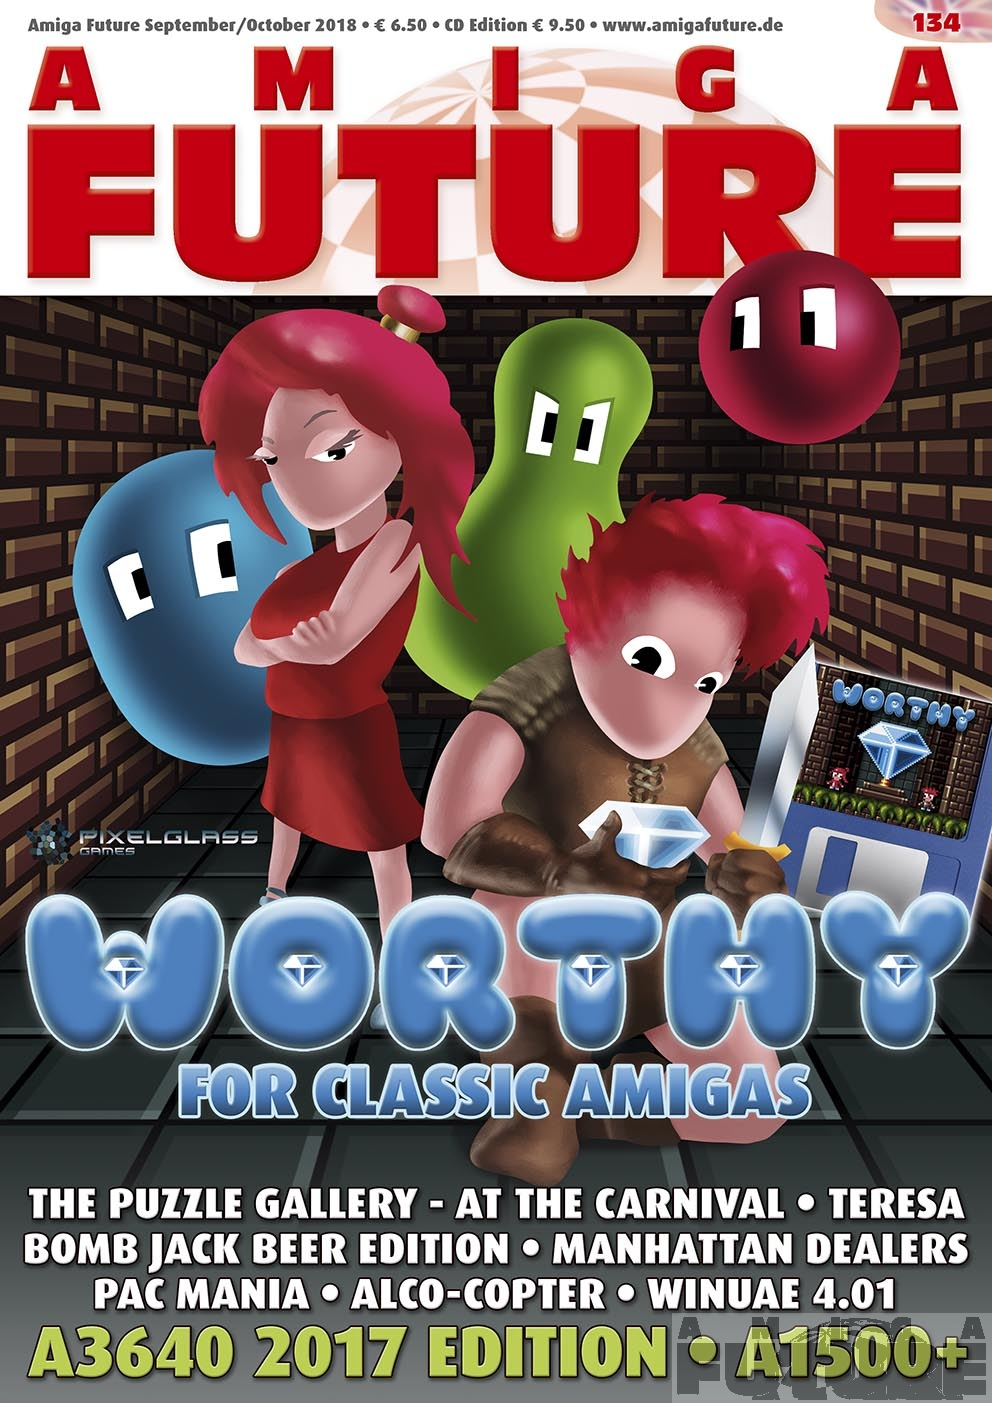 Amiga Future Issue 134 (English)